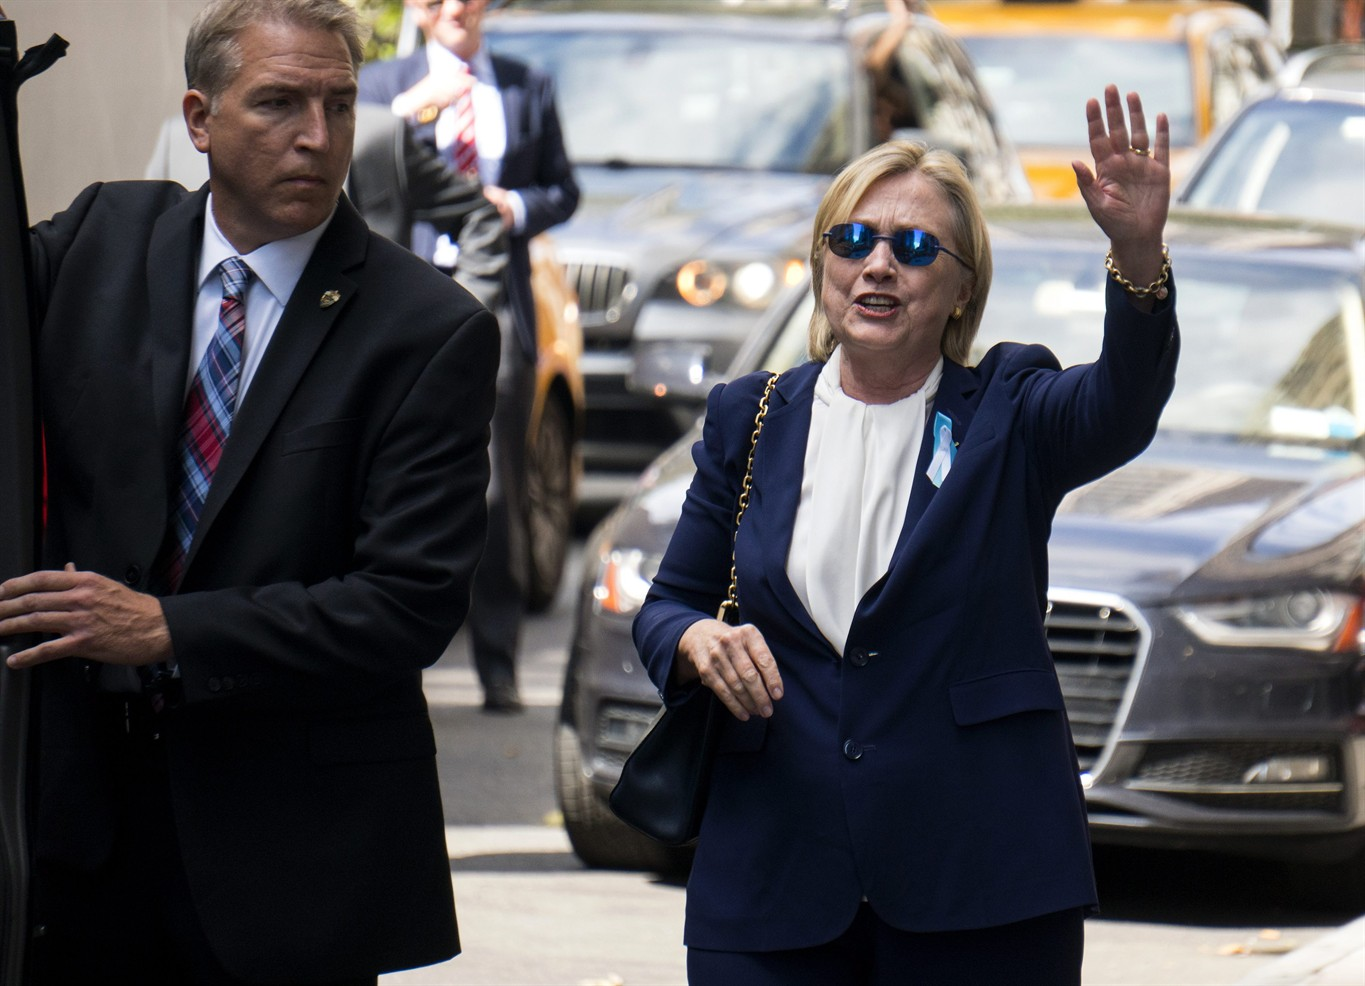 Didn't think illness would be 'that big a deal': Hillary